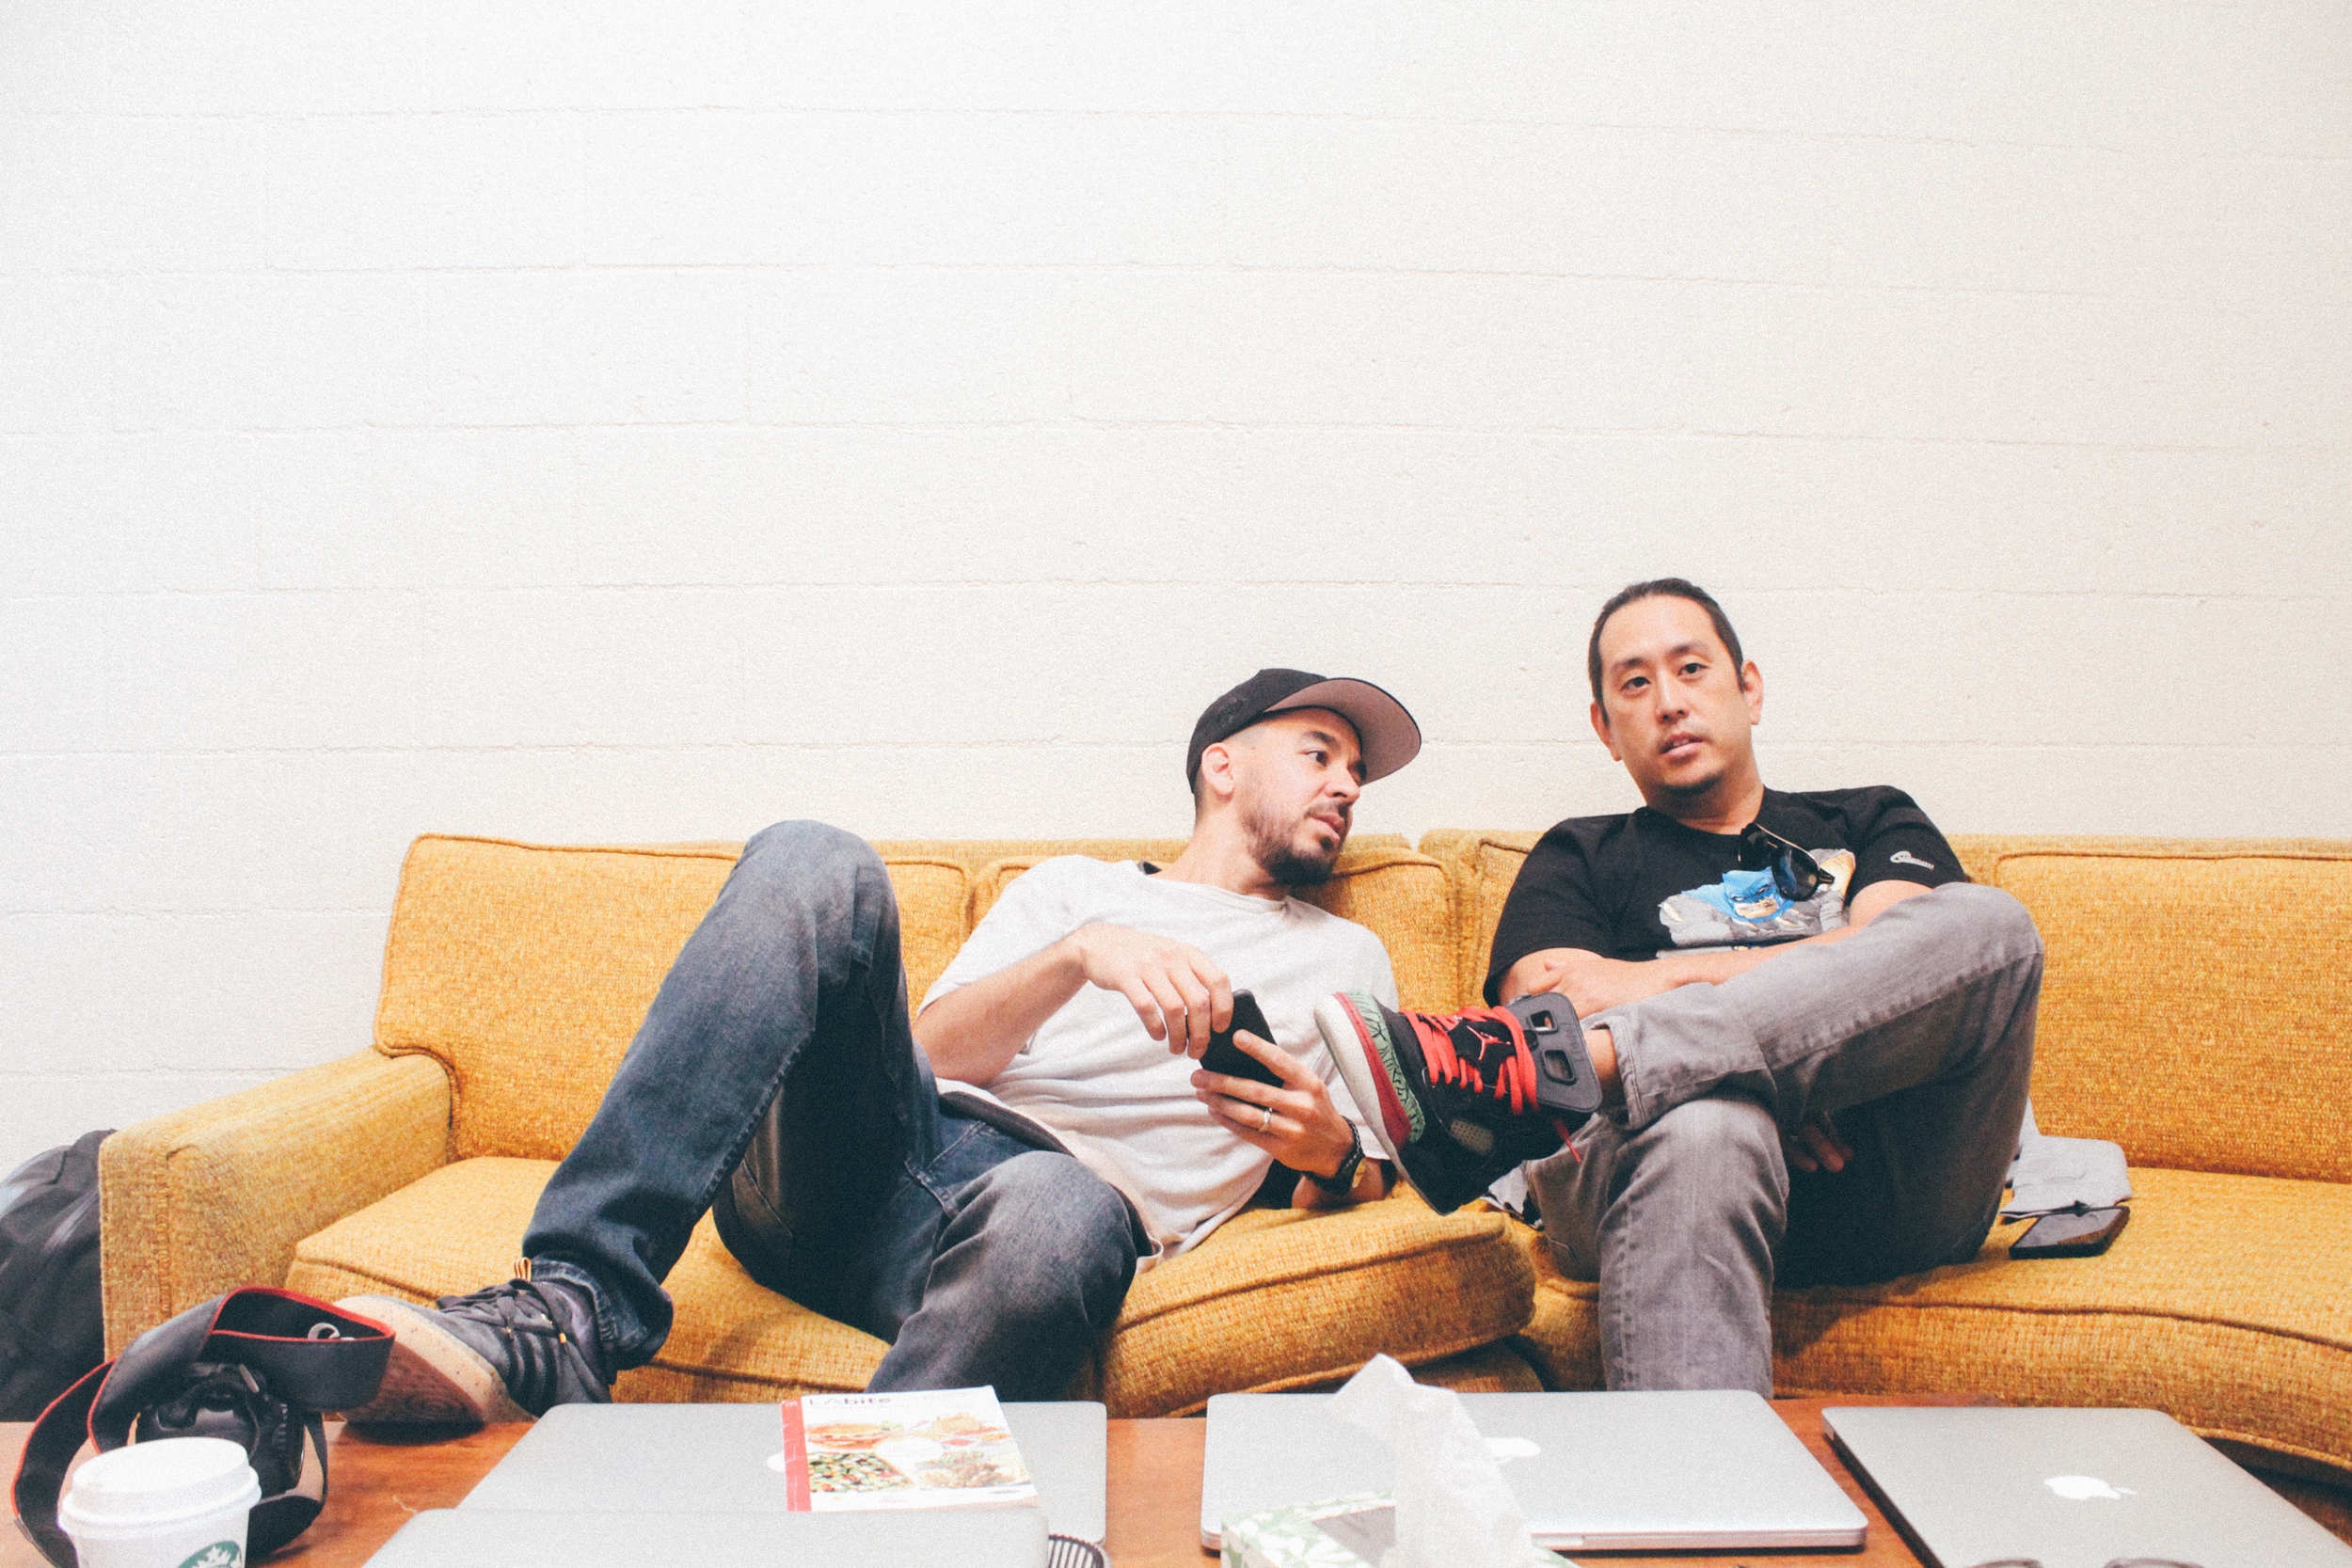 LINKIN PARK - Mike Shinoda x Joe Hahn - XVLP